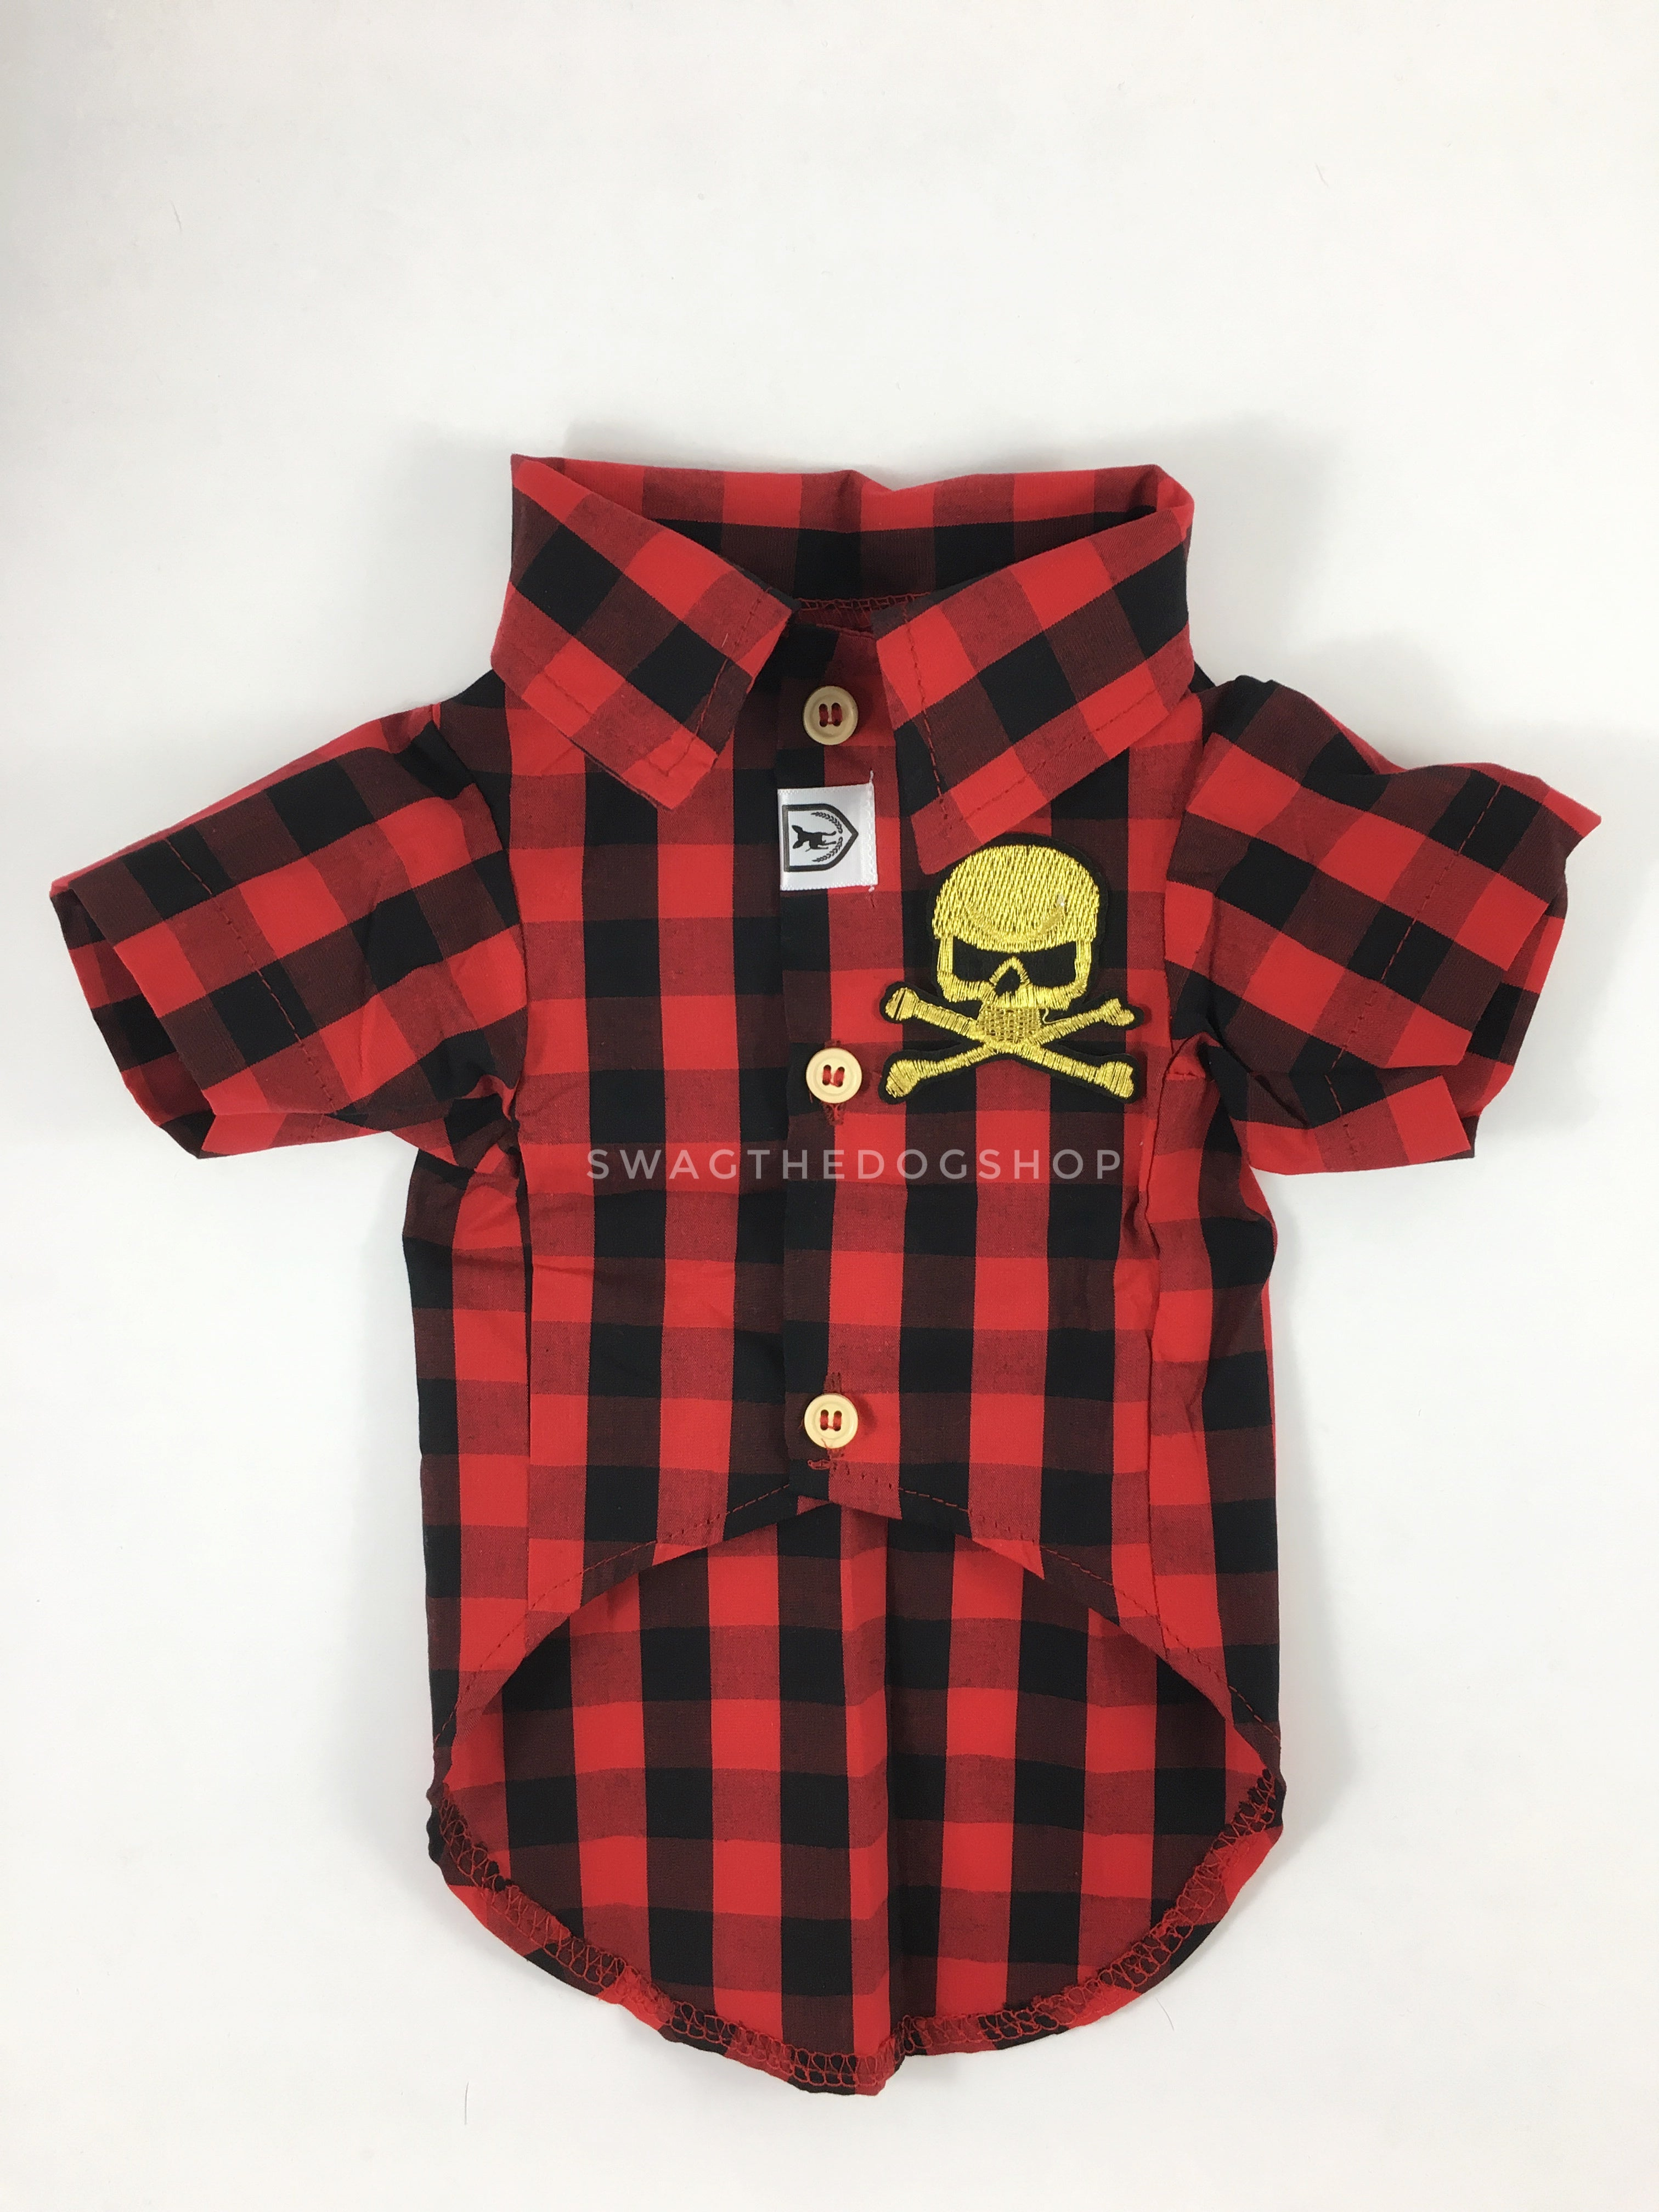 Kenora Summer Shirt - Patch Add-on of Badass Skull on the Front. Black and Red Gingham Shirt